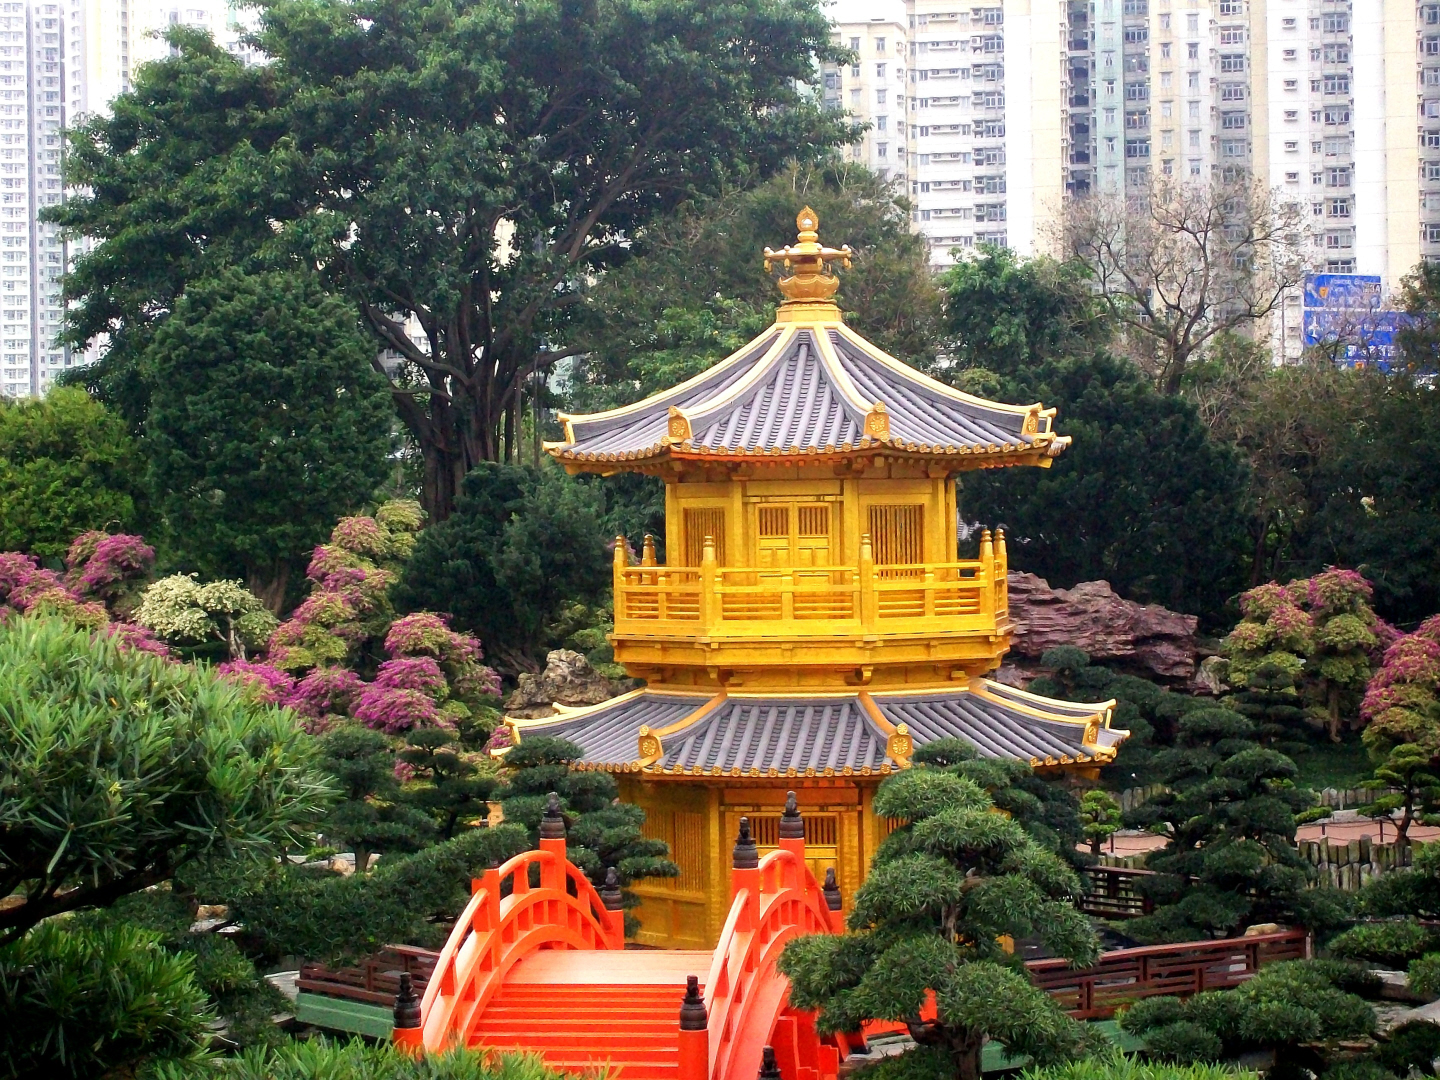 garden Pagoda in the Chi Lin Buddhist Nunnery - Kowloon Island off of Hong Kong